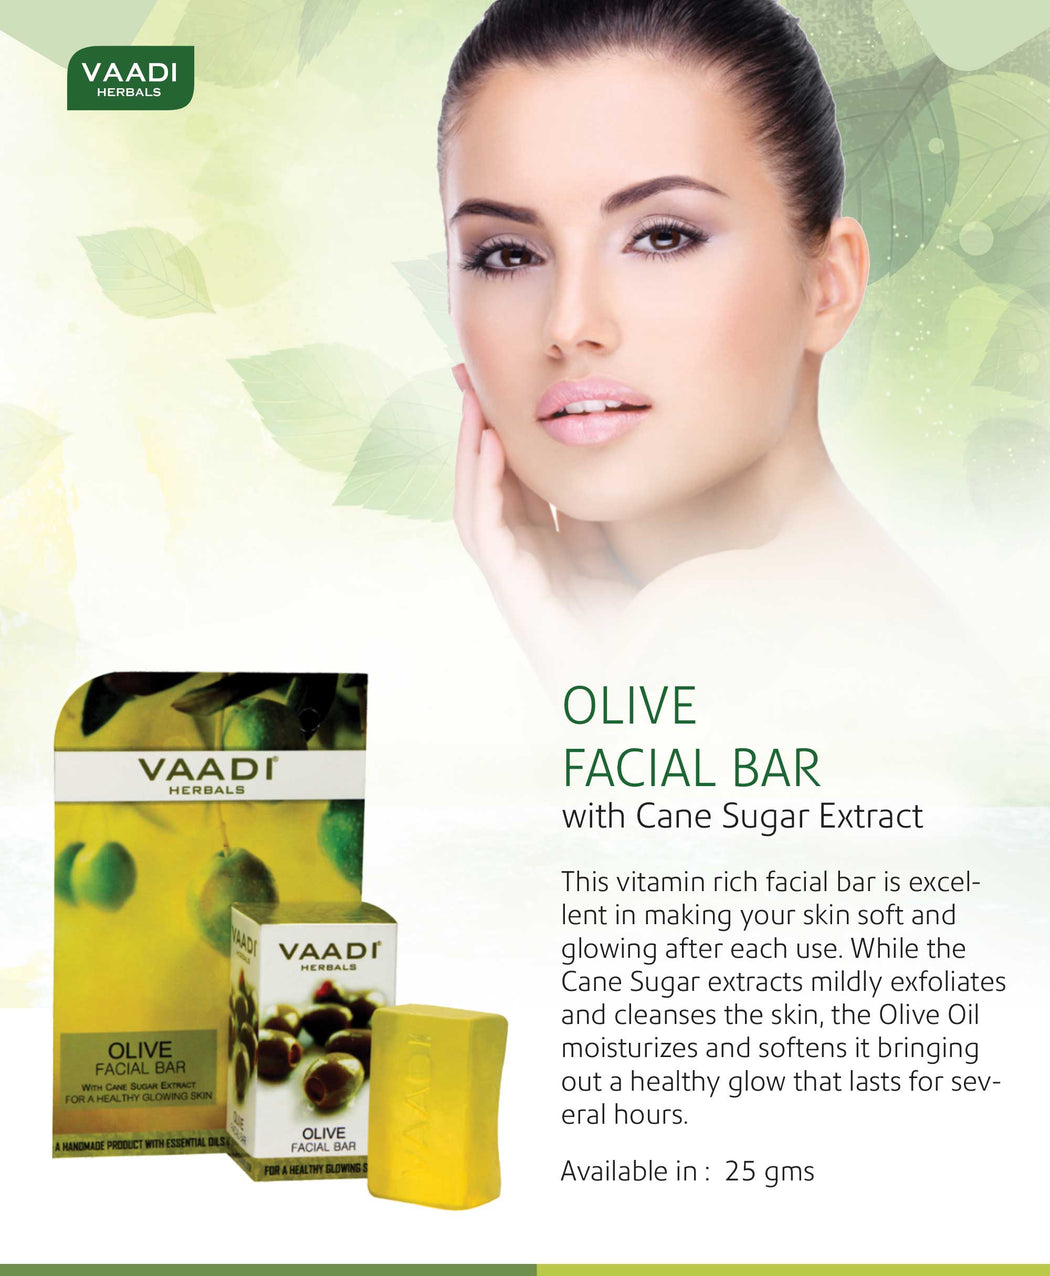 Olive Facial Bar with Cane Sugar Extract (25 gms)